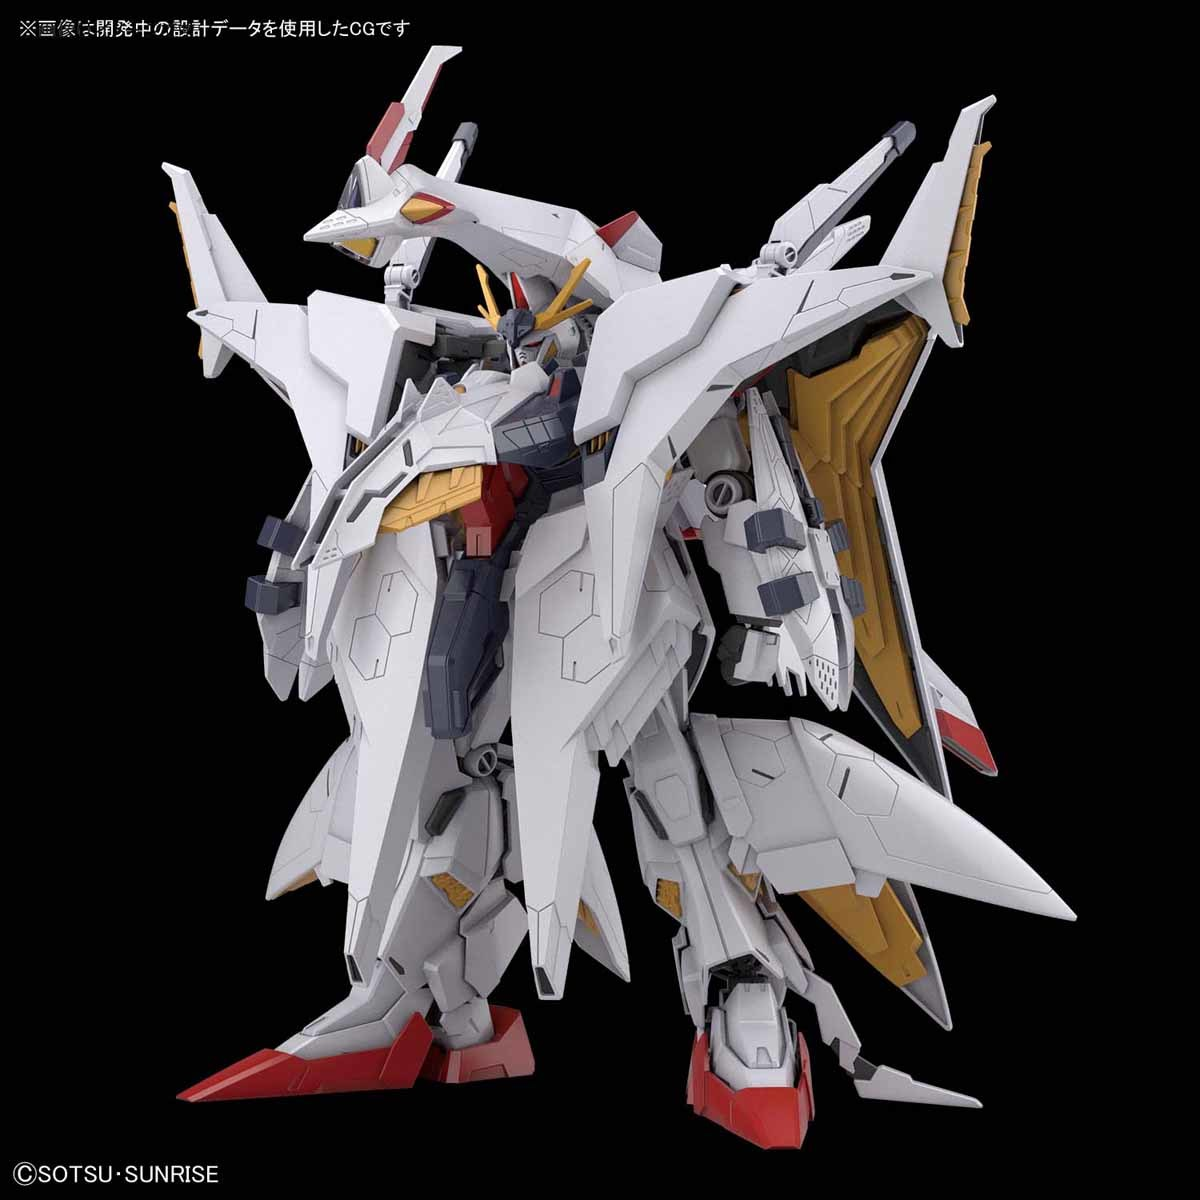 NEW IMAGES HGUC 1/144 PENELOPE. October release - 7,480 yen